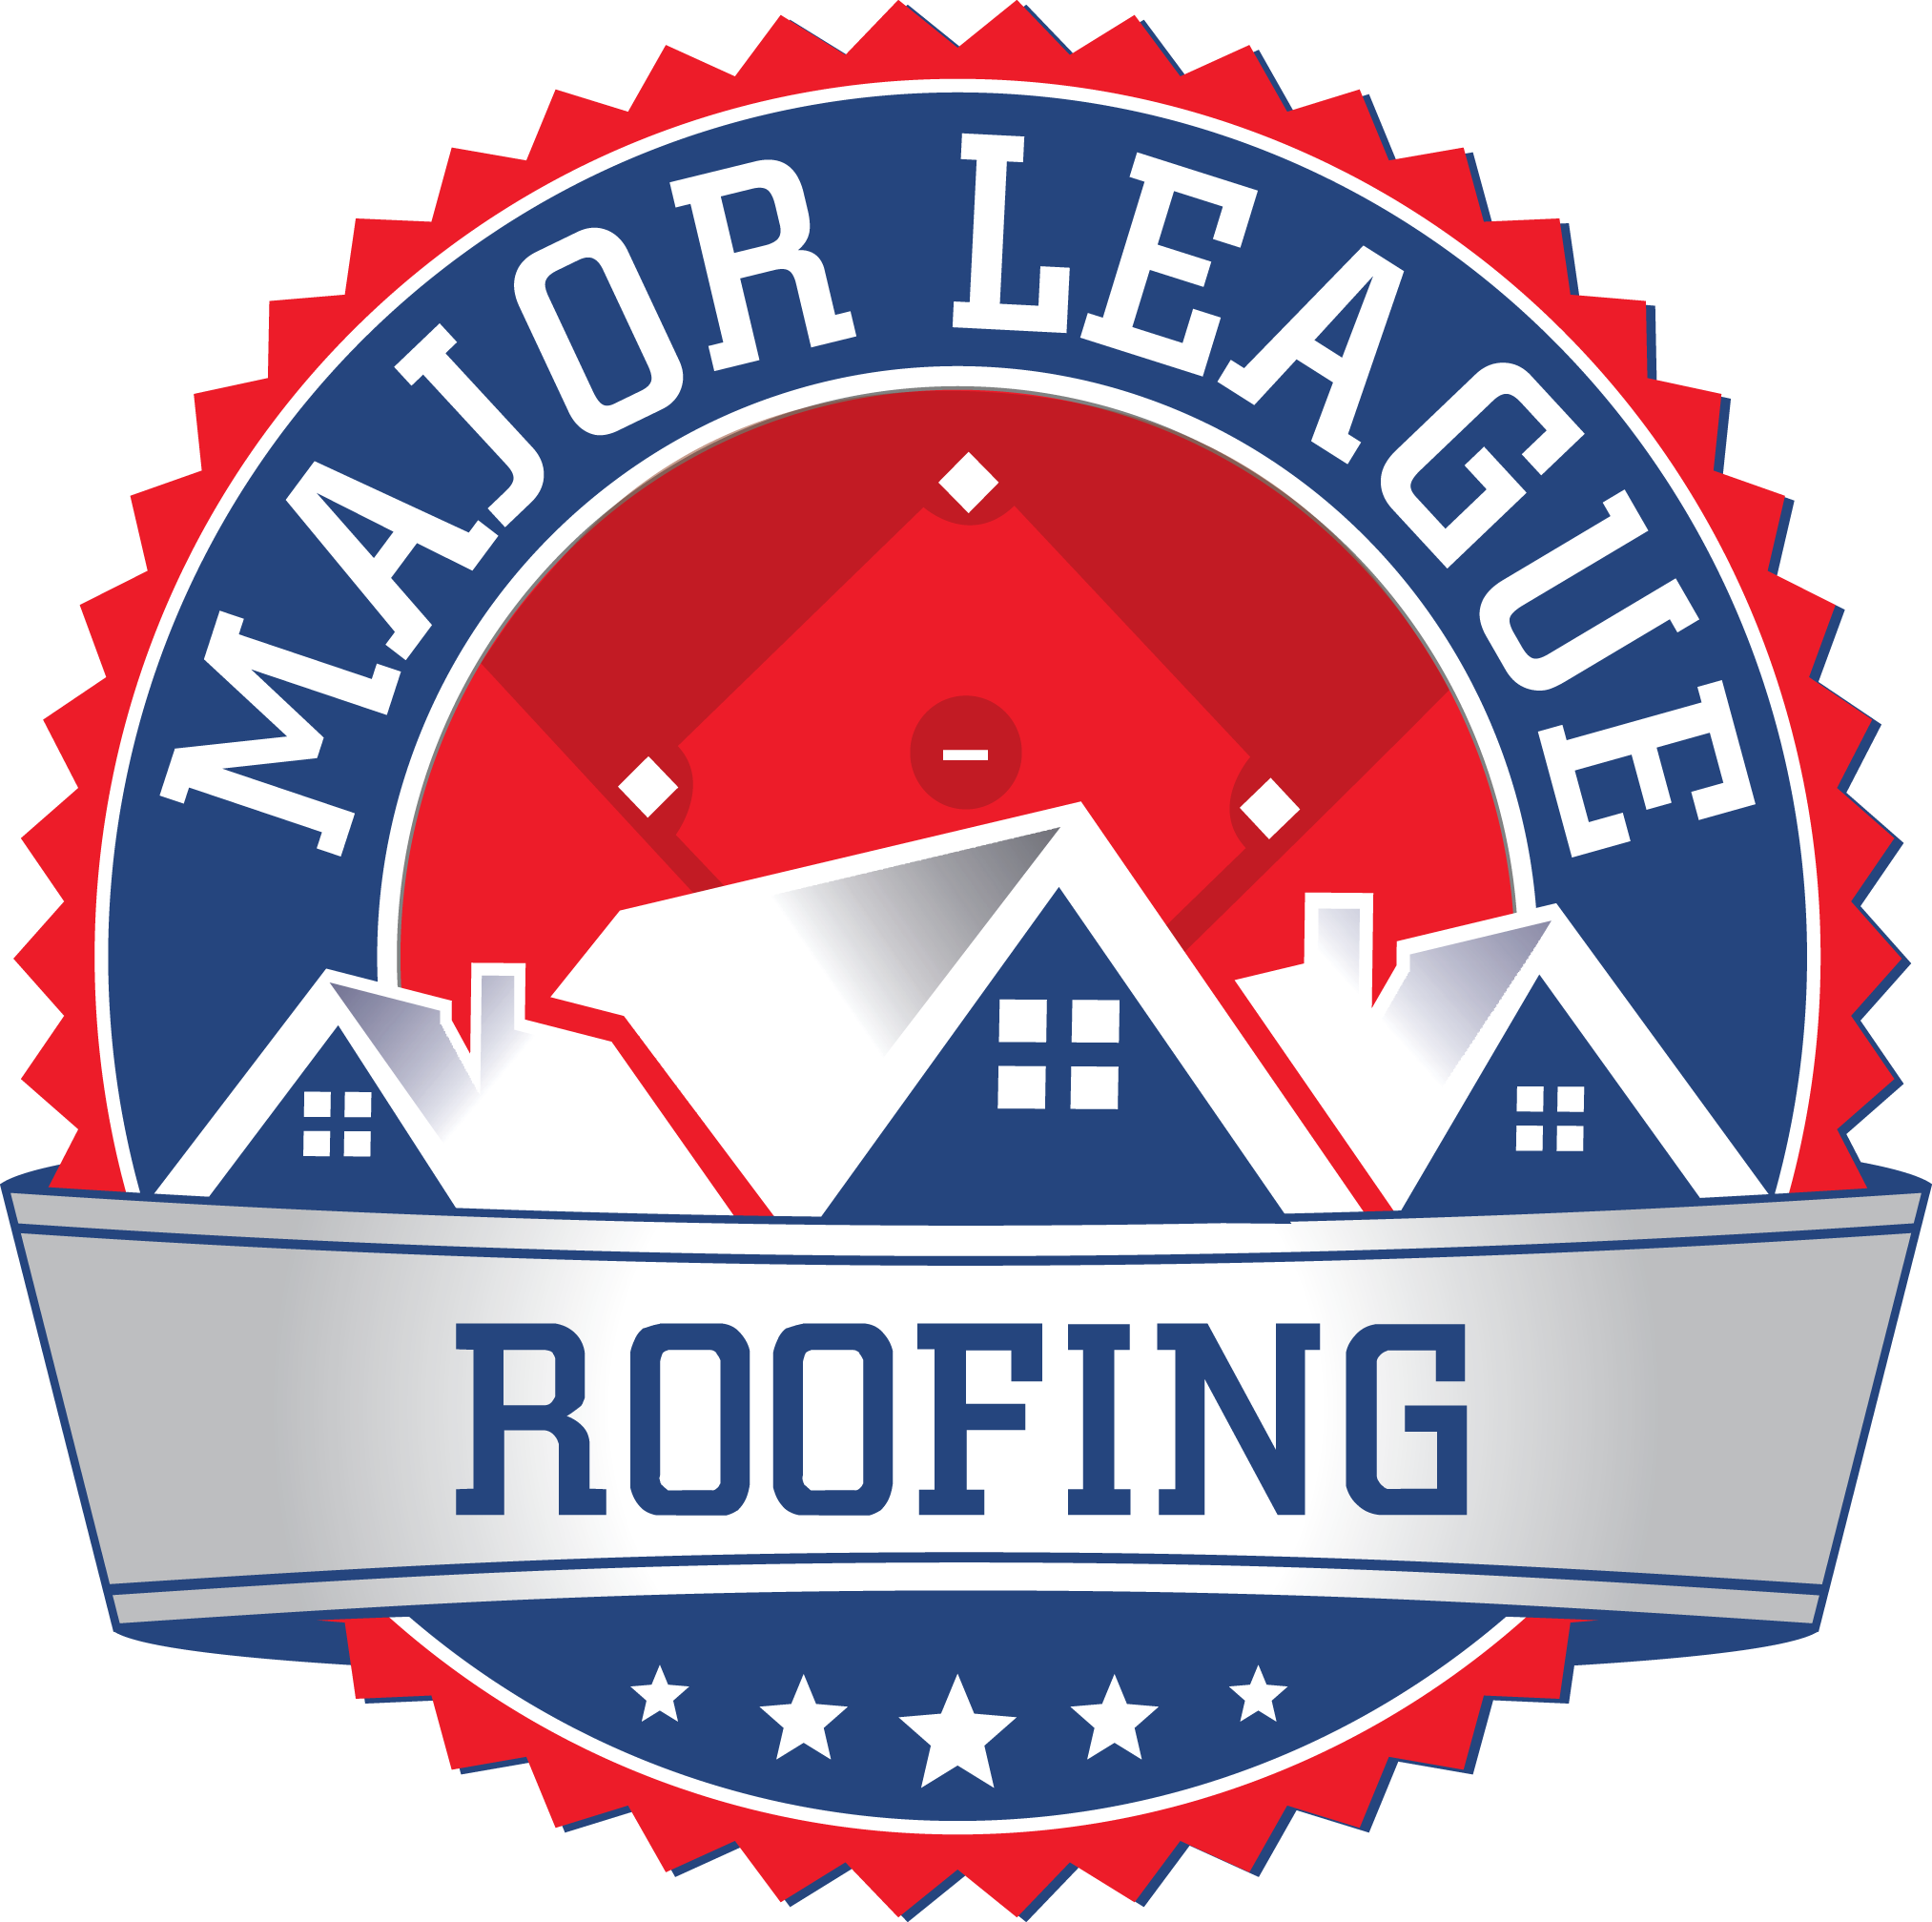 Major League Roofing